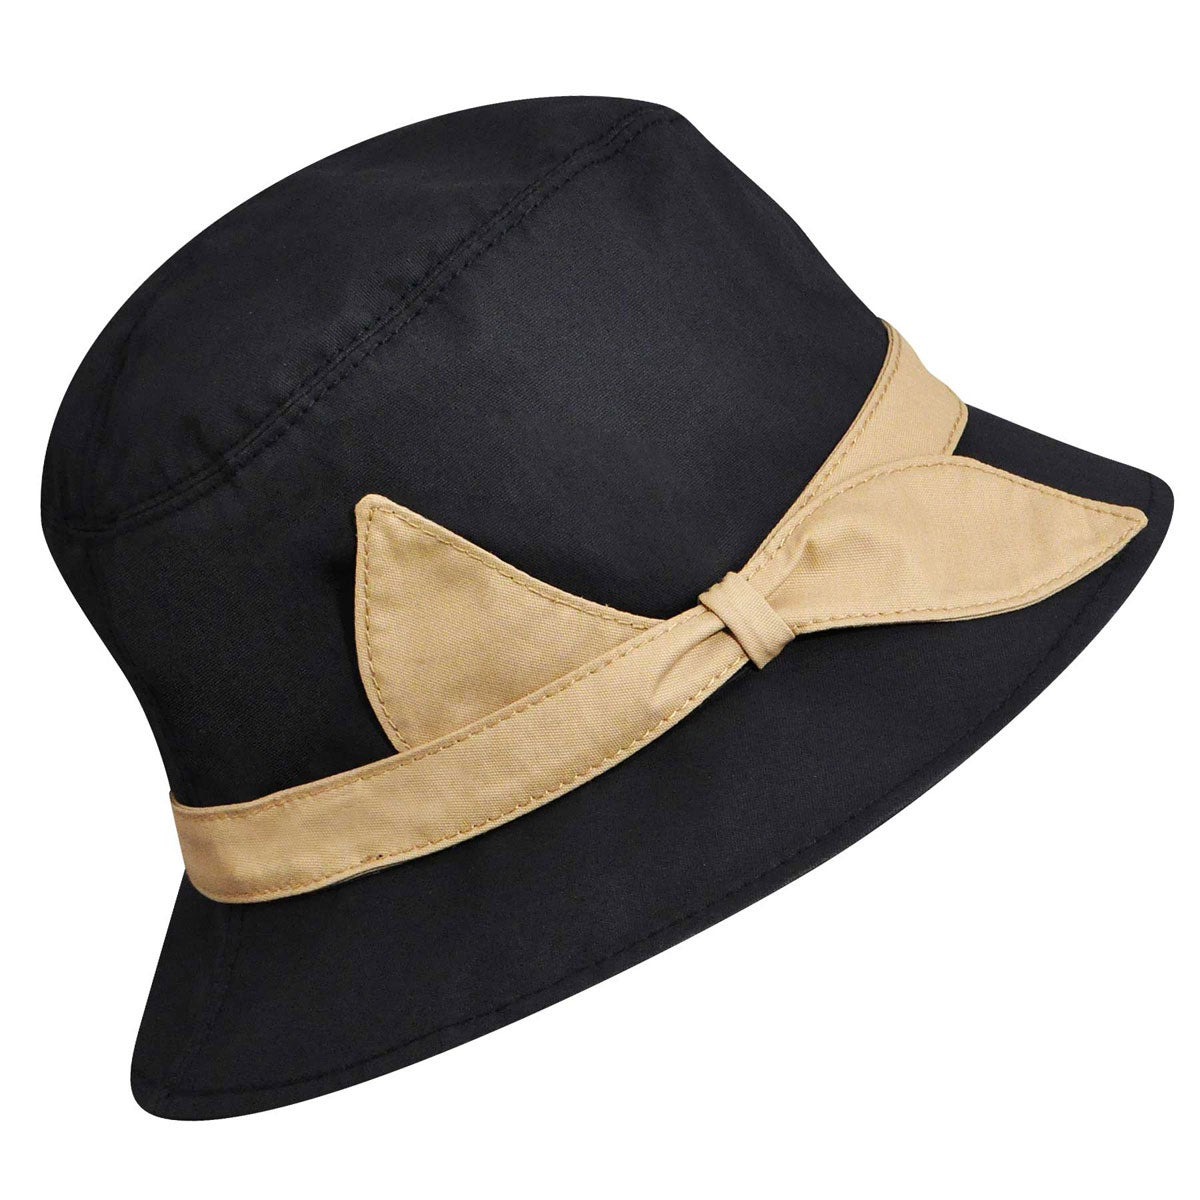 1930s Style Hats – New Vintage Inspired Designs Yeva Bucket Hat $130.00 AT vintagedancer.com